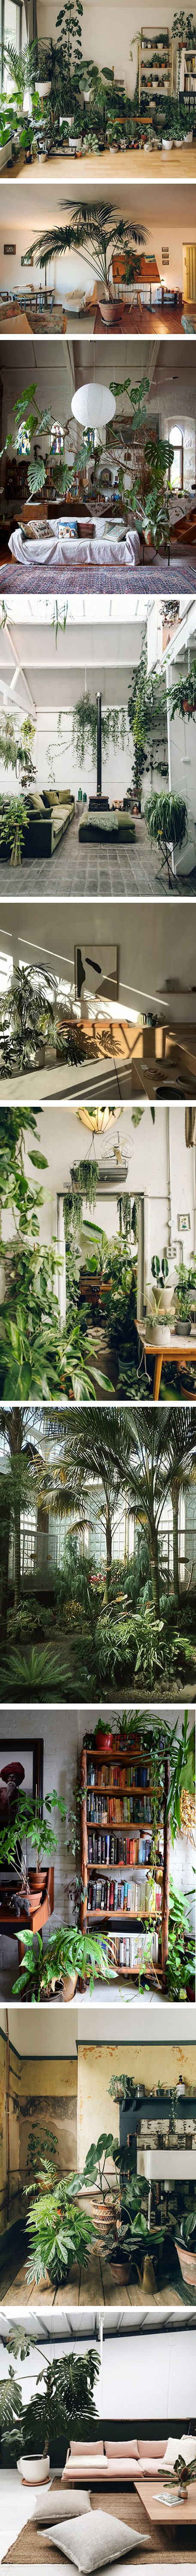 10 different ways of creating an indoor jungle at home